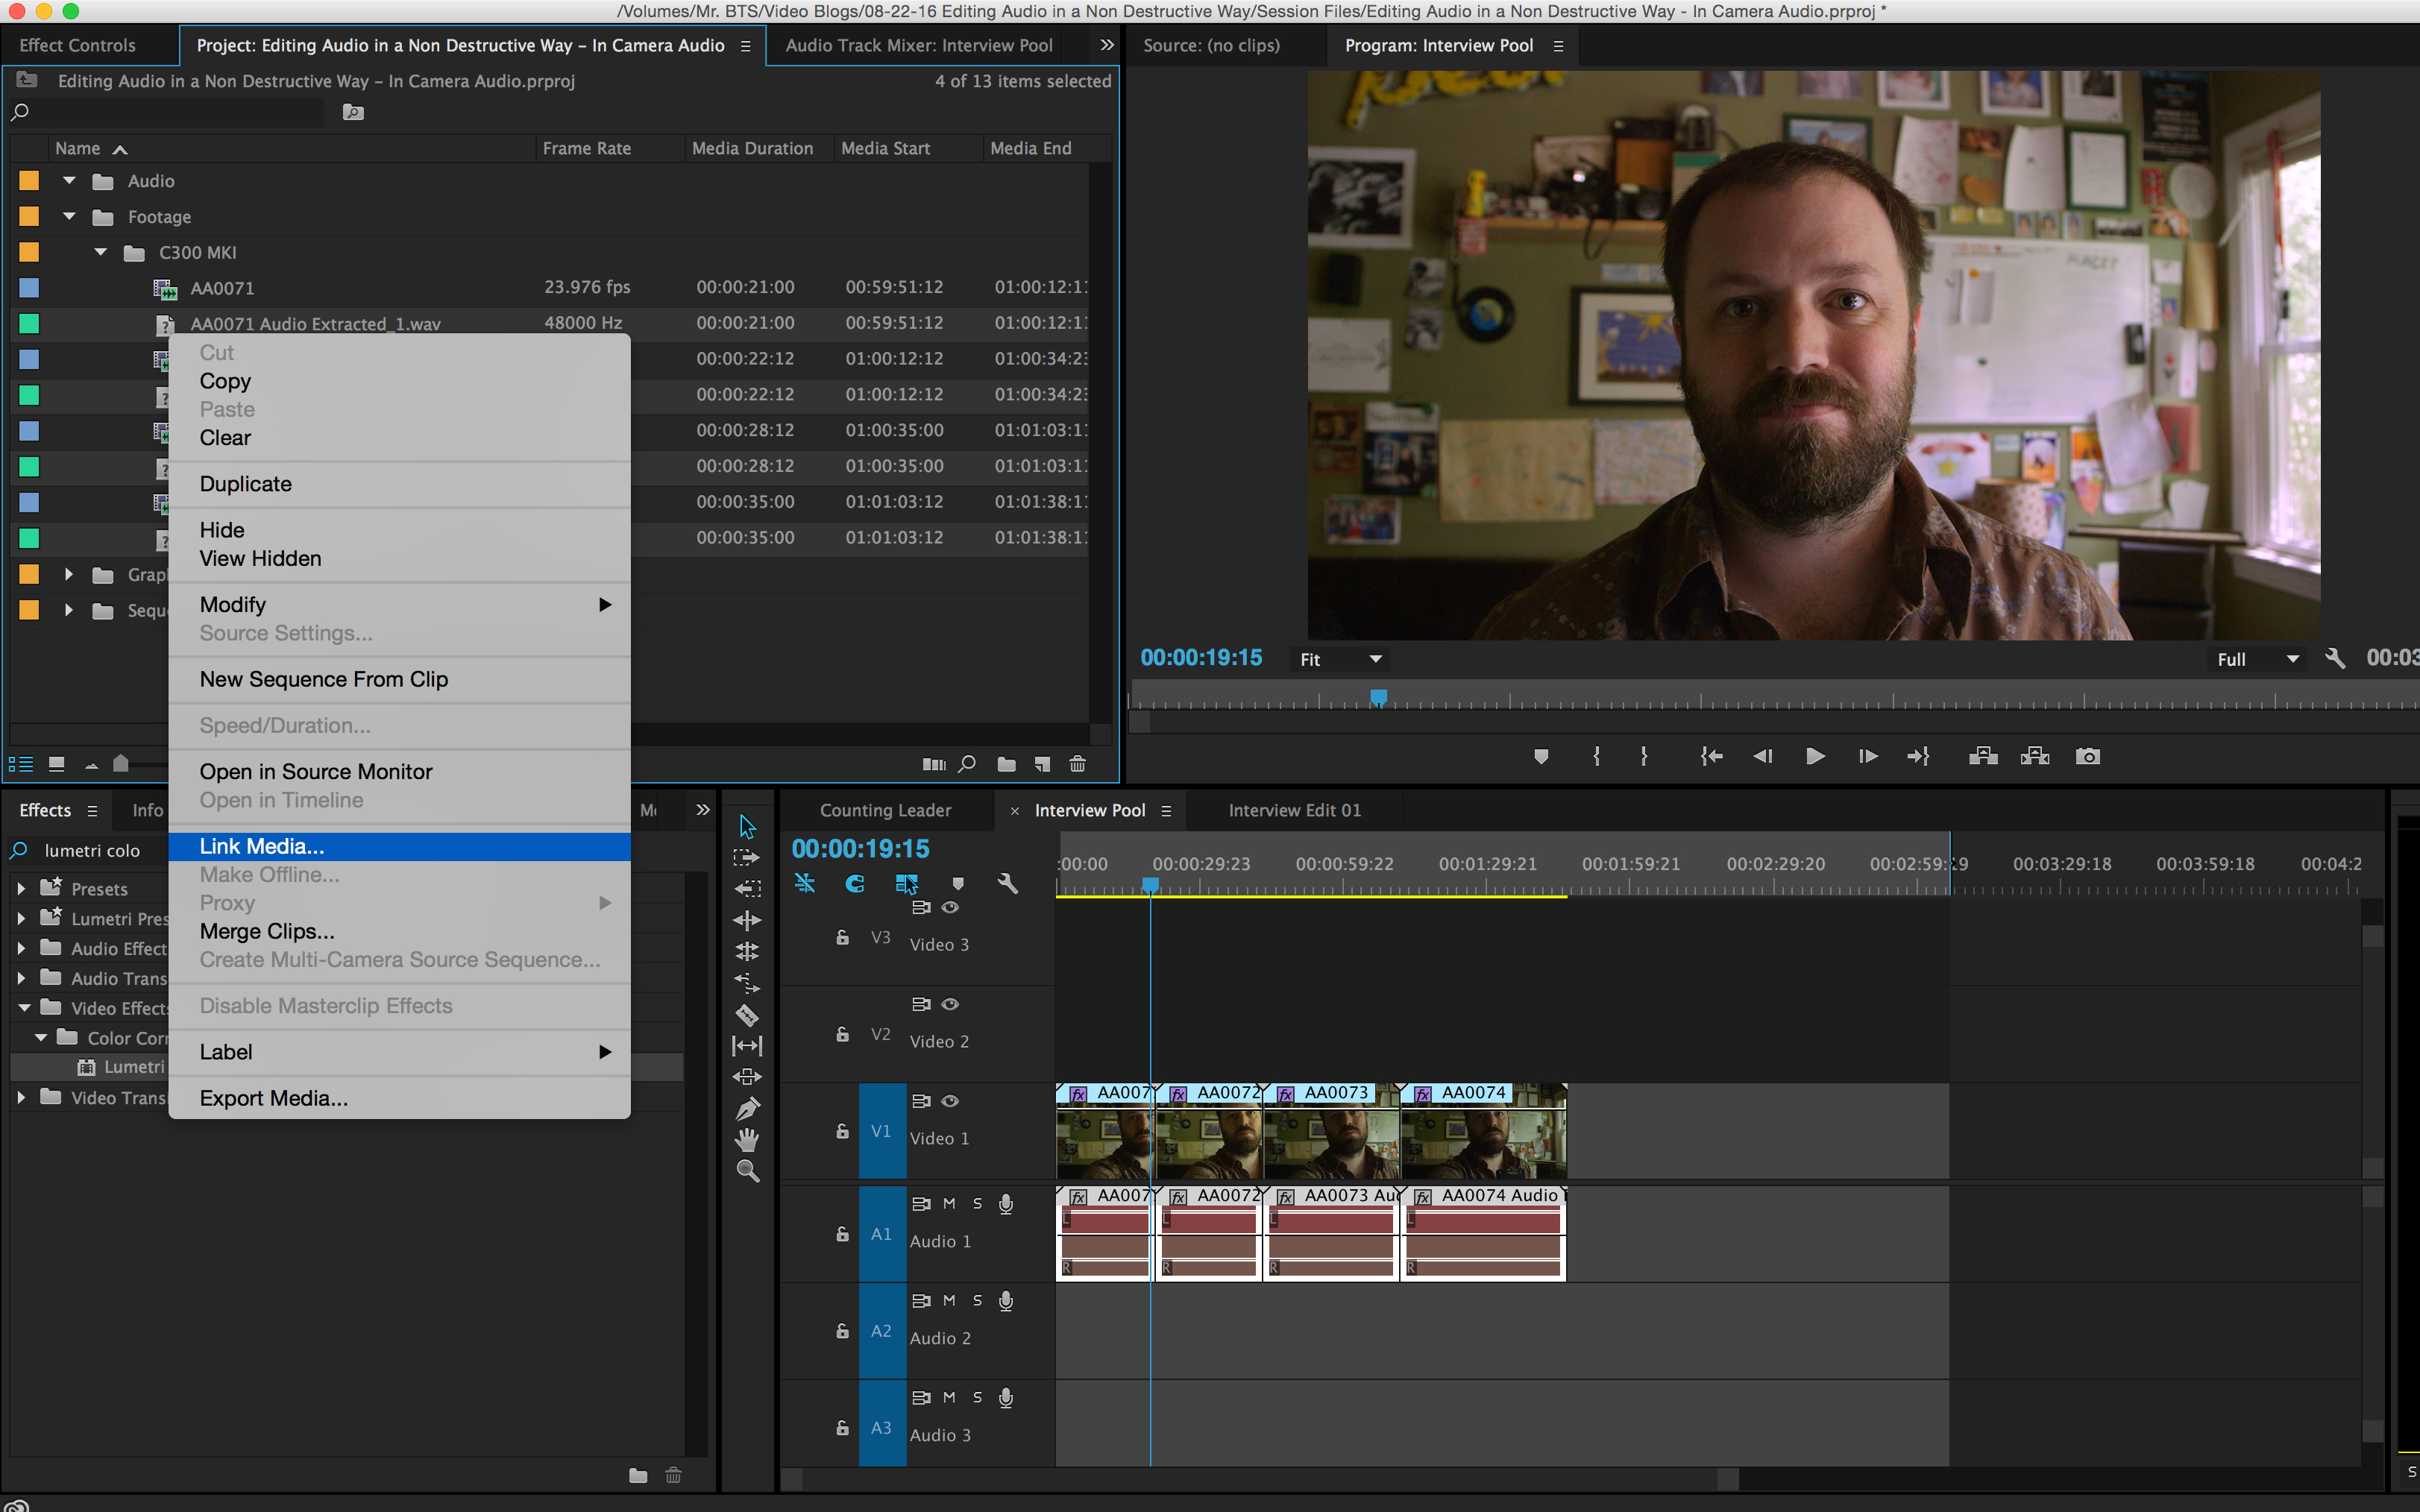 How to Simultaneously Edit Multiple Internal Camera Audio Files: Link Media Adobe Premiere CC